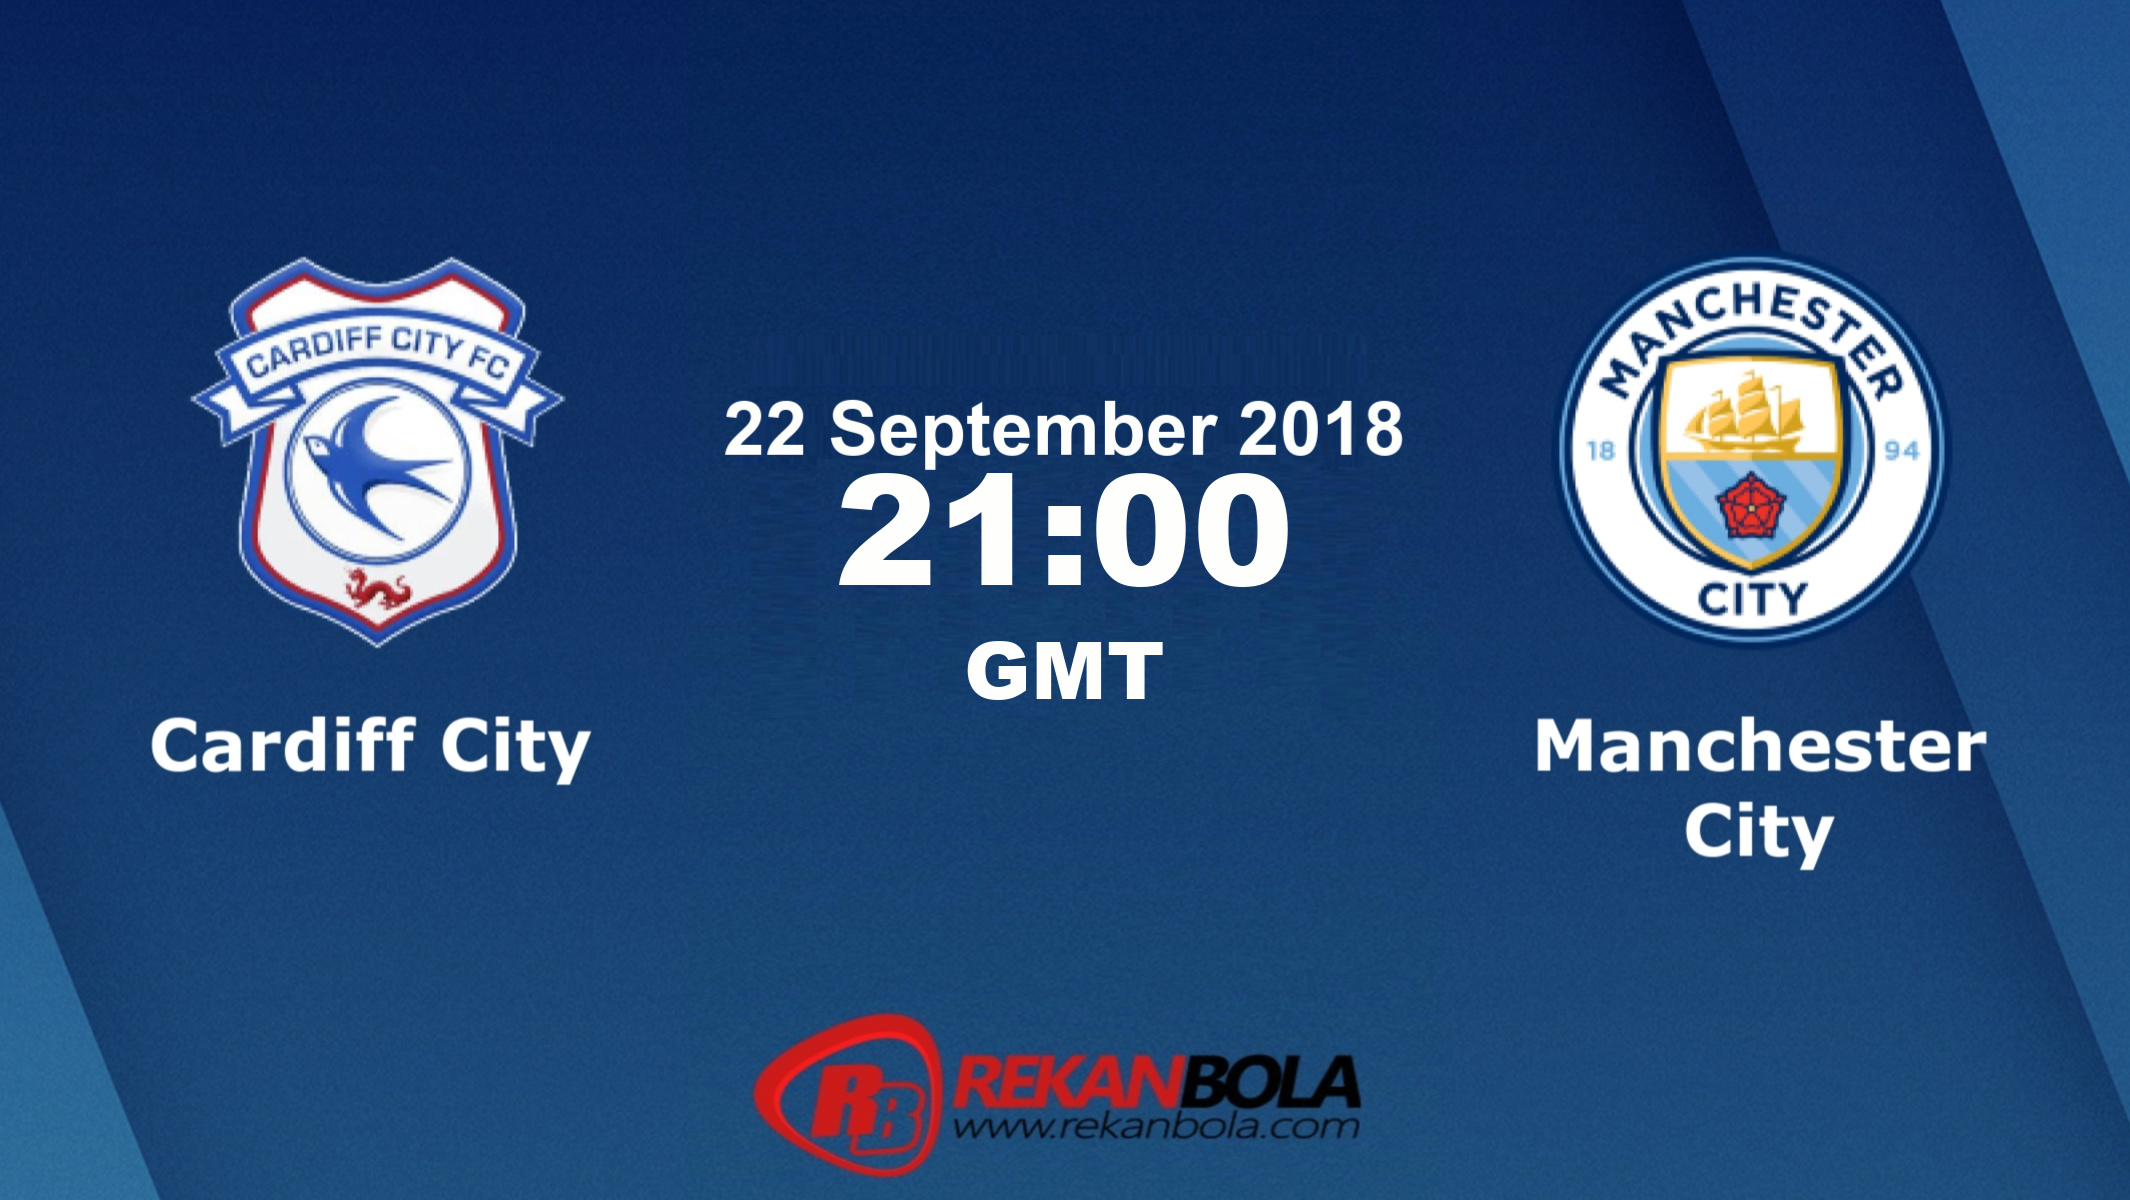 Nonton Siaran Live Streaming Cardiff Vs Man City 22 September 2018